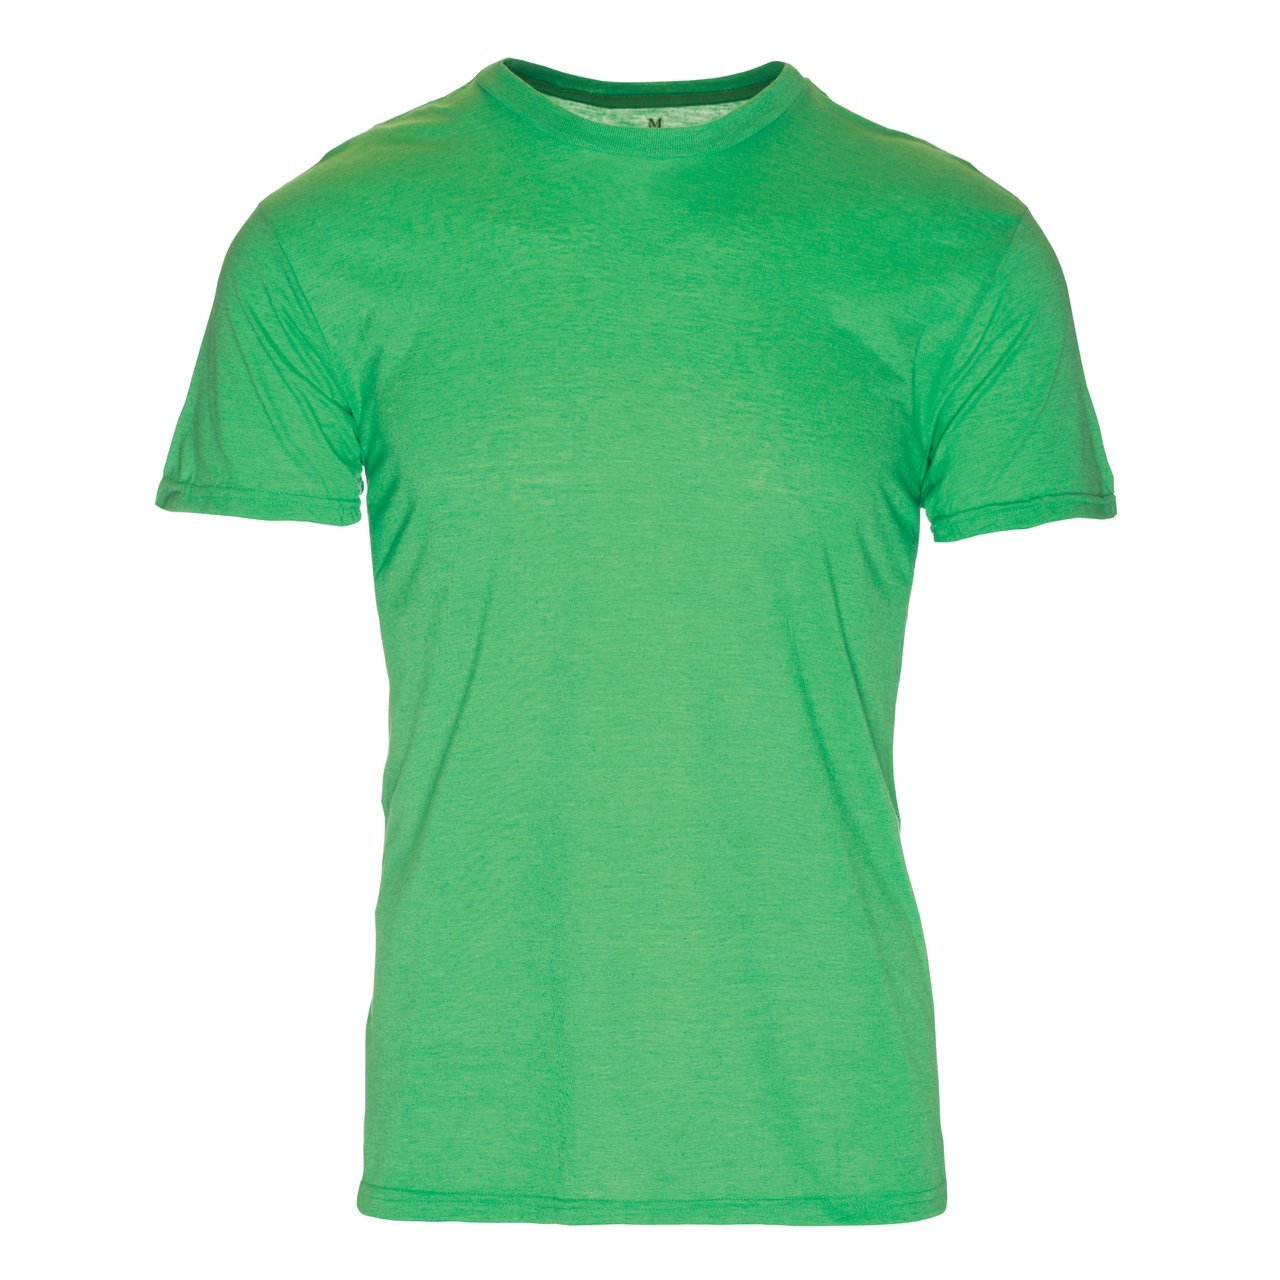 PC100GN Eco REPREVE® Recycled Polyester/Cotton Crew T-Shirt - Green